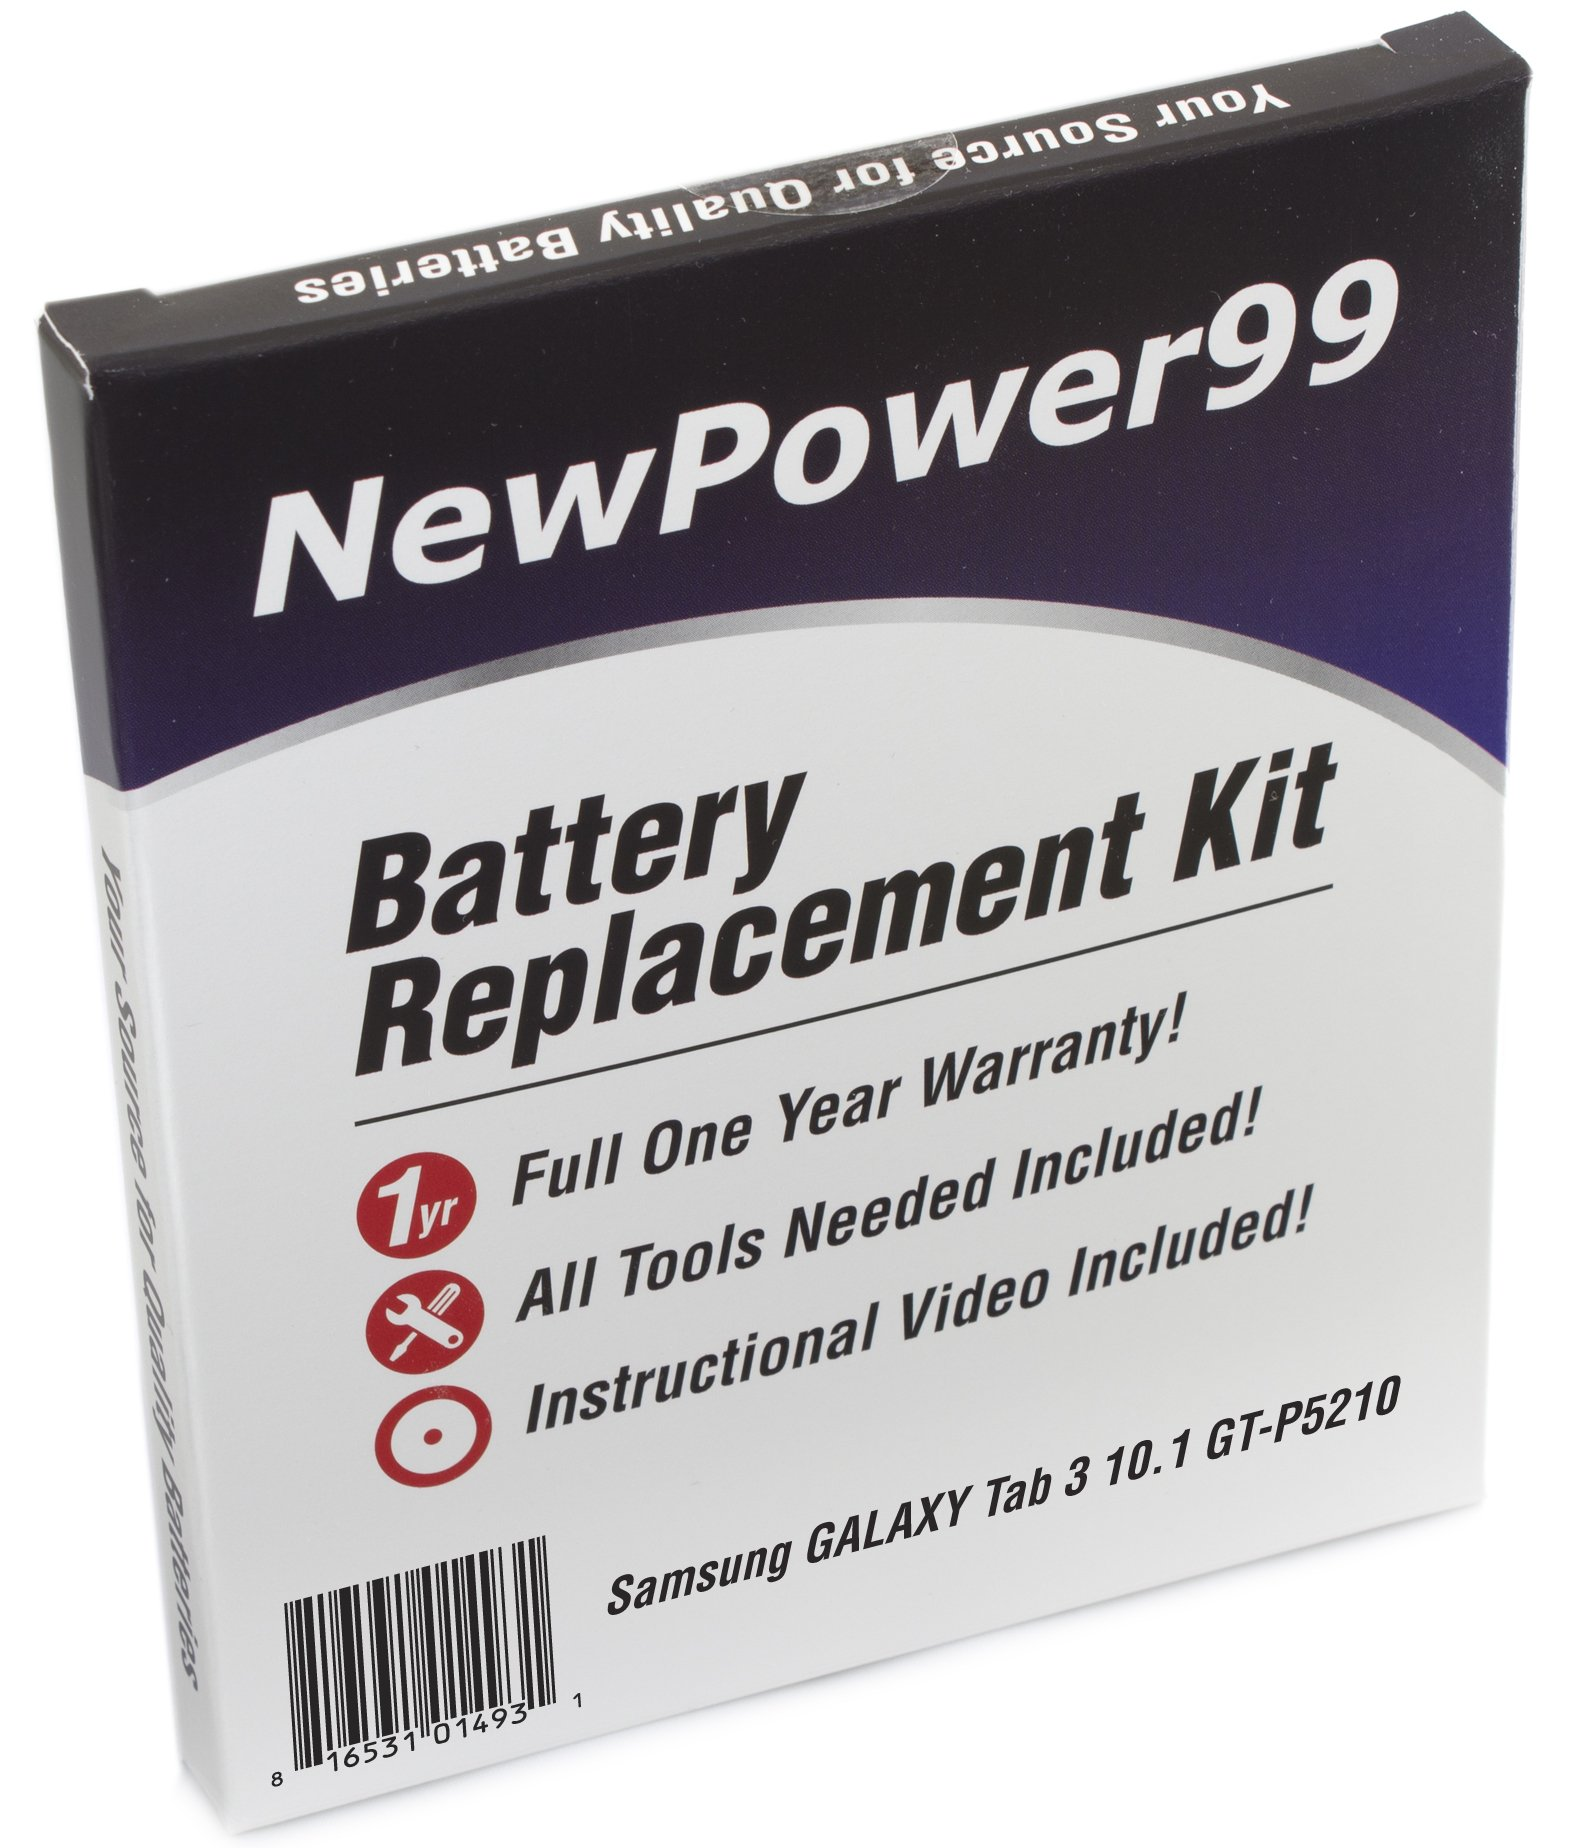 Compatible with Samsung GALAXY Tab 3 10.1 GT-P5210 Battery Replacement Kit with Video Installation DVD, Installation Tools, and Extended Life Battery by NewPower99